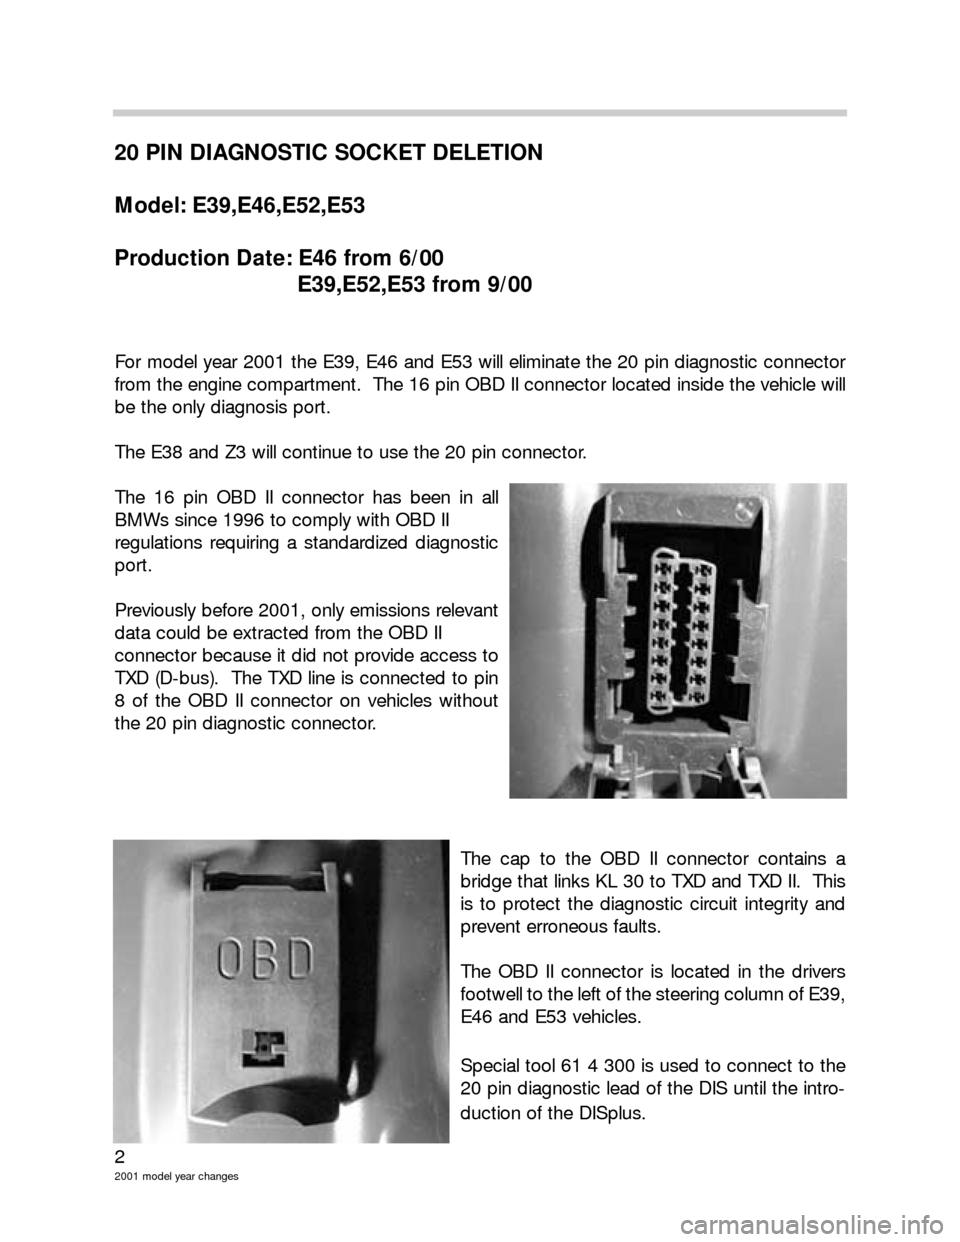 BMW 3 SERIES 2003 E46 Model Yar Changes, Page 2